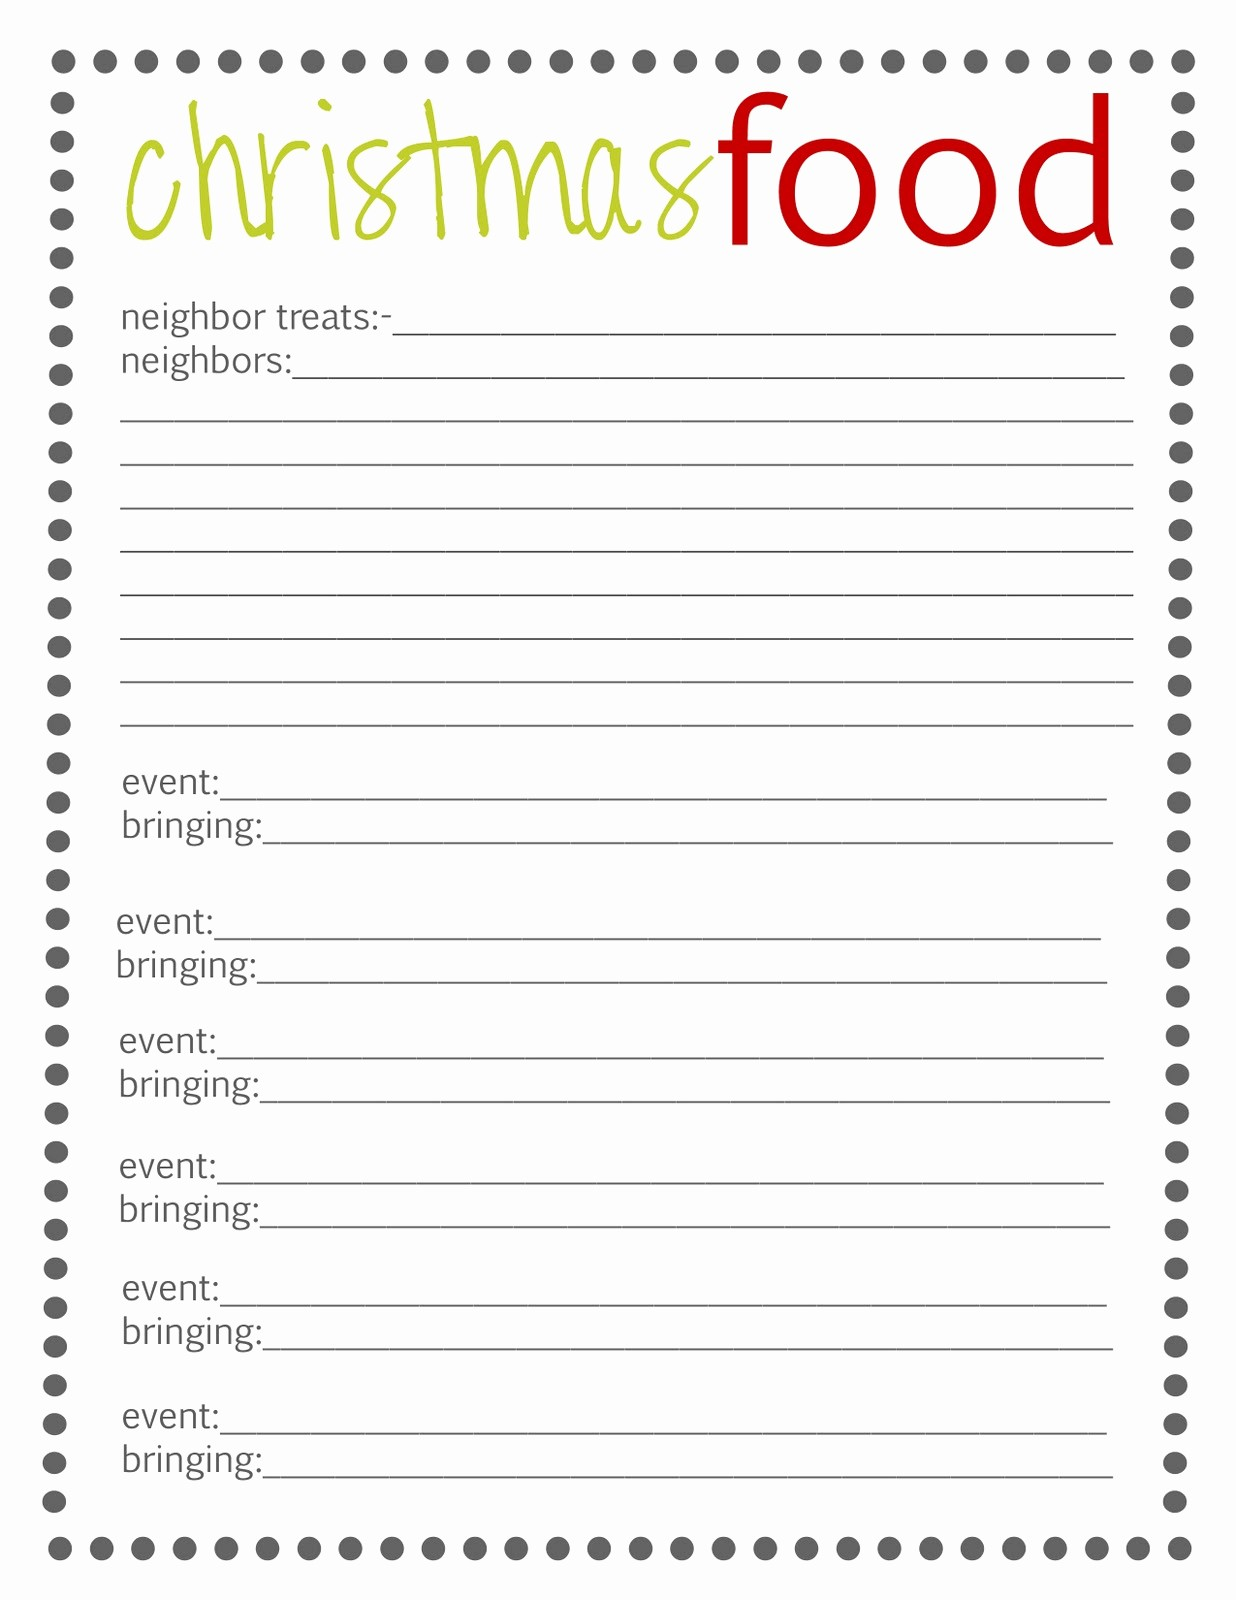 Holiday Sign Up Sheet Templates Awesome Lovely Little Snippets Planning Christmas 2012 Free